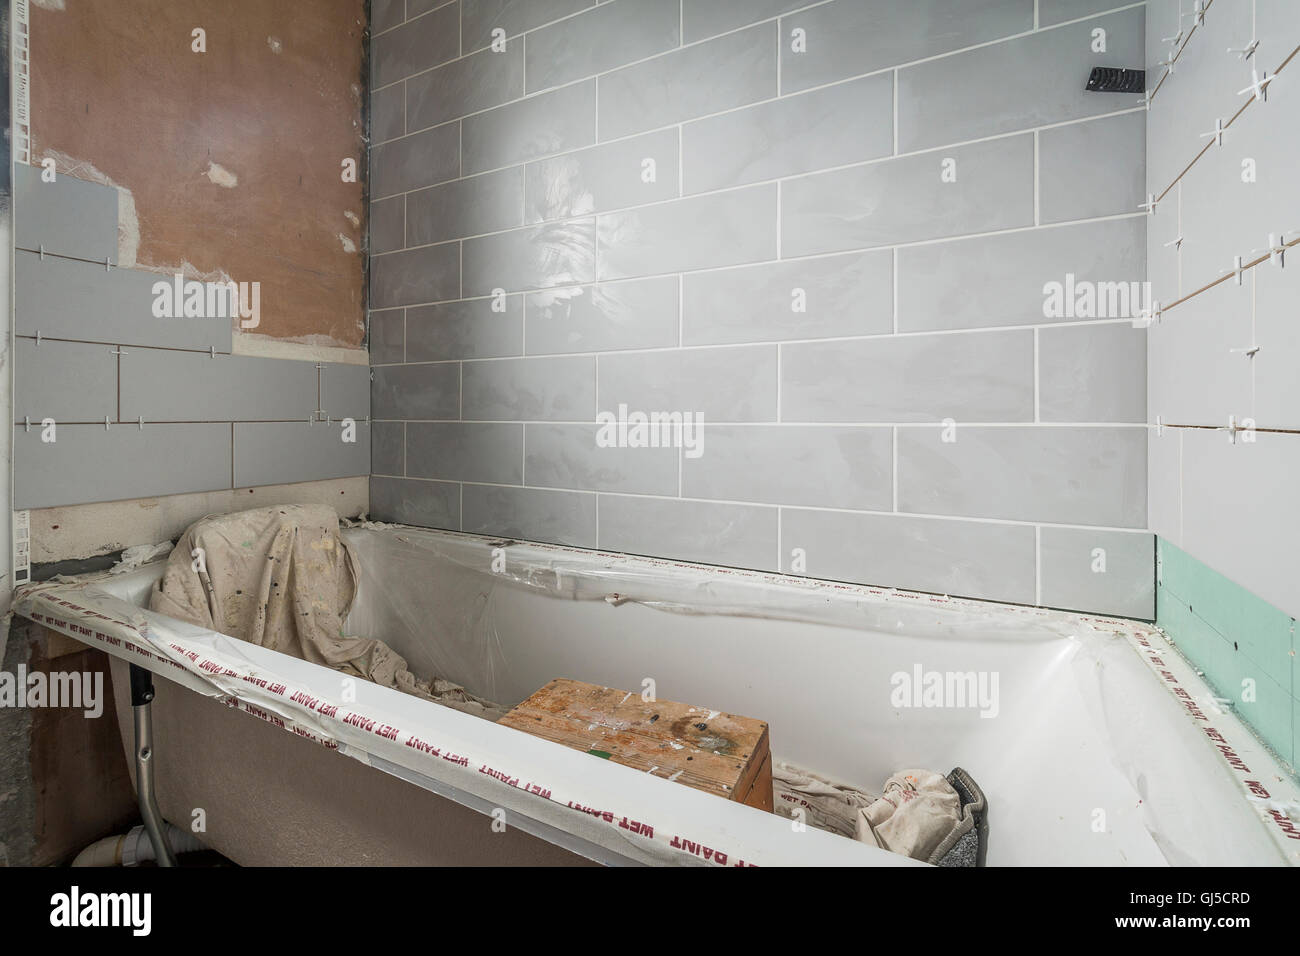 Tiling Bathroom Stock Photos & Tiling Bathroom Stock Images - Alamy